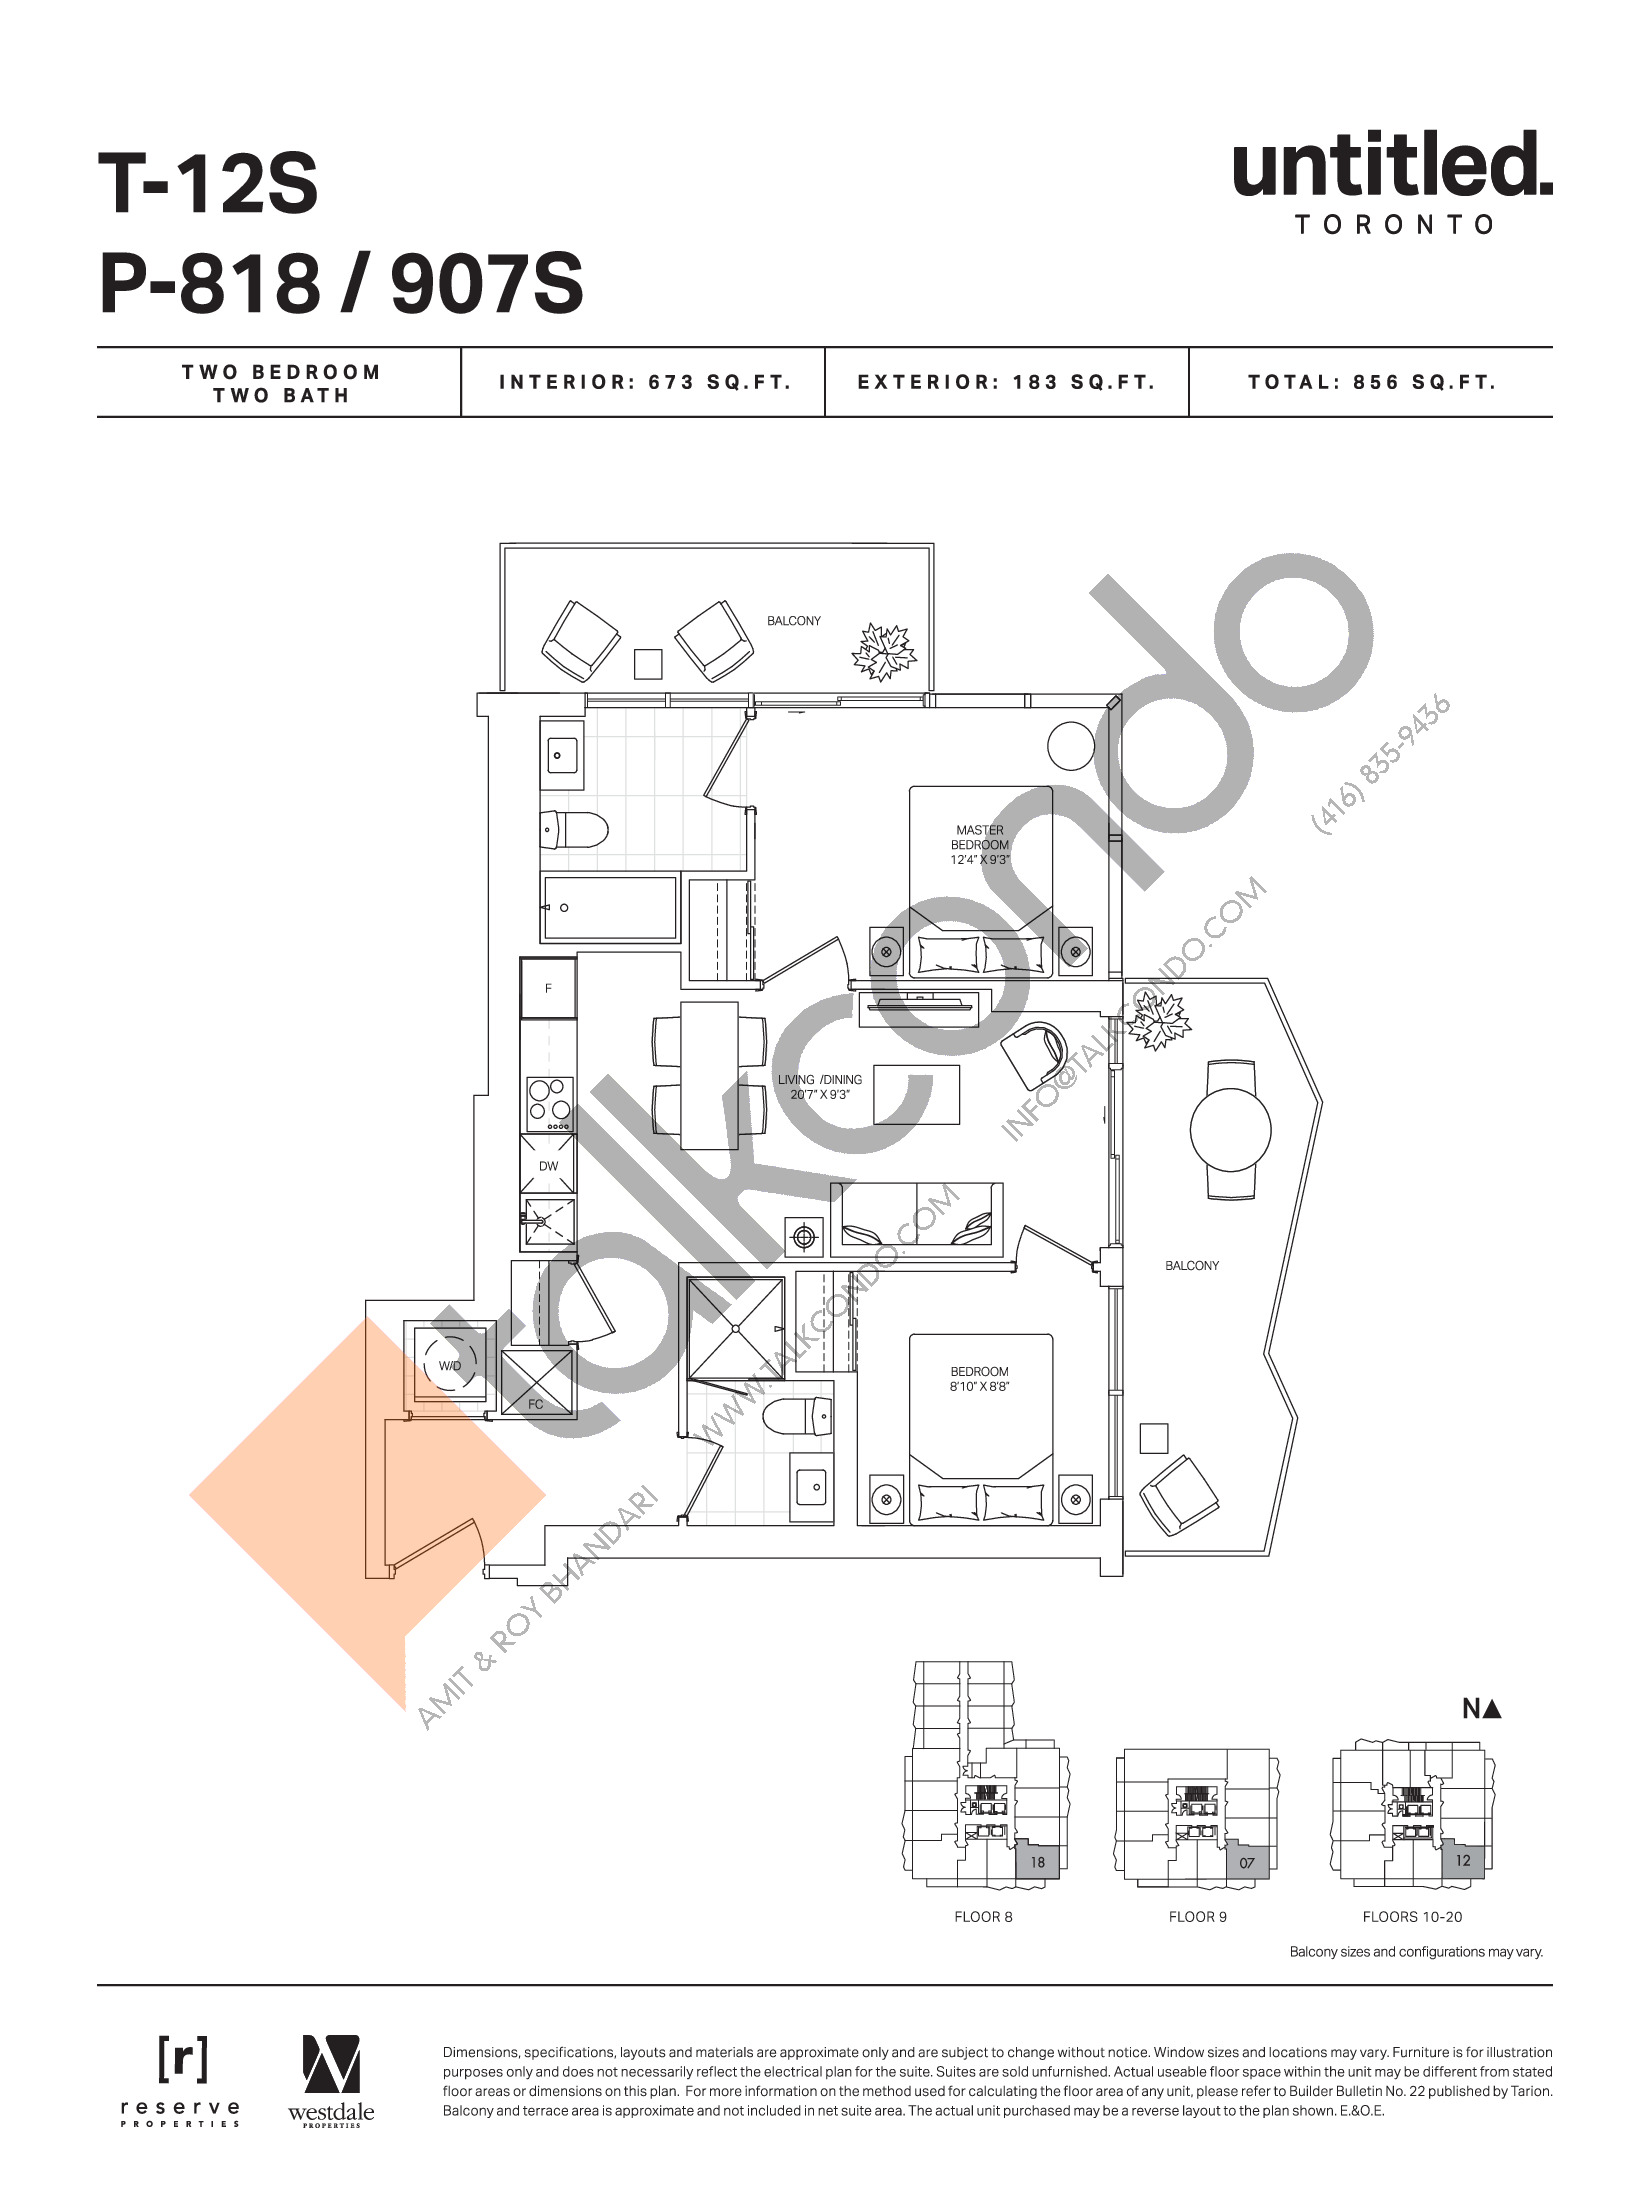 T-12S / P-818 / 907S (Floor 8-20) Floor Plan at Untitled Toronto Condos - 673 sq.ft